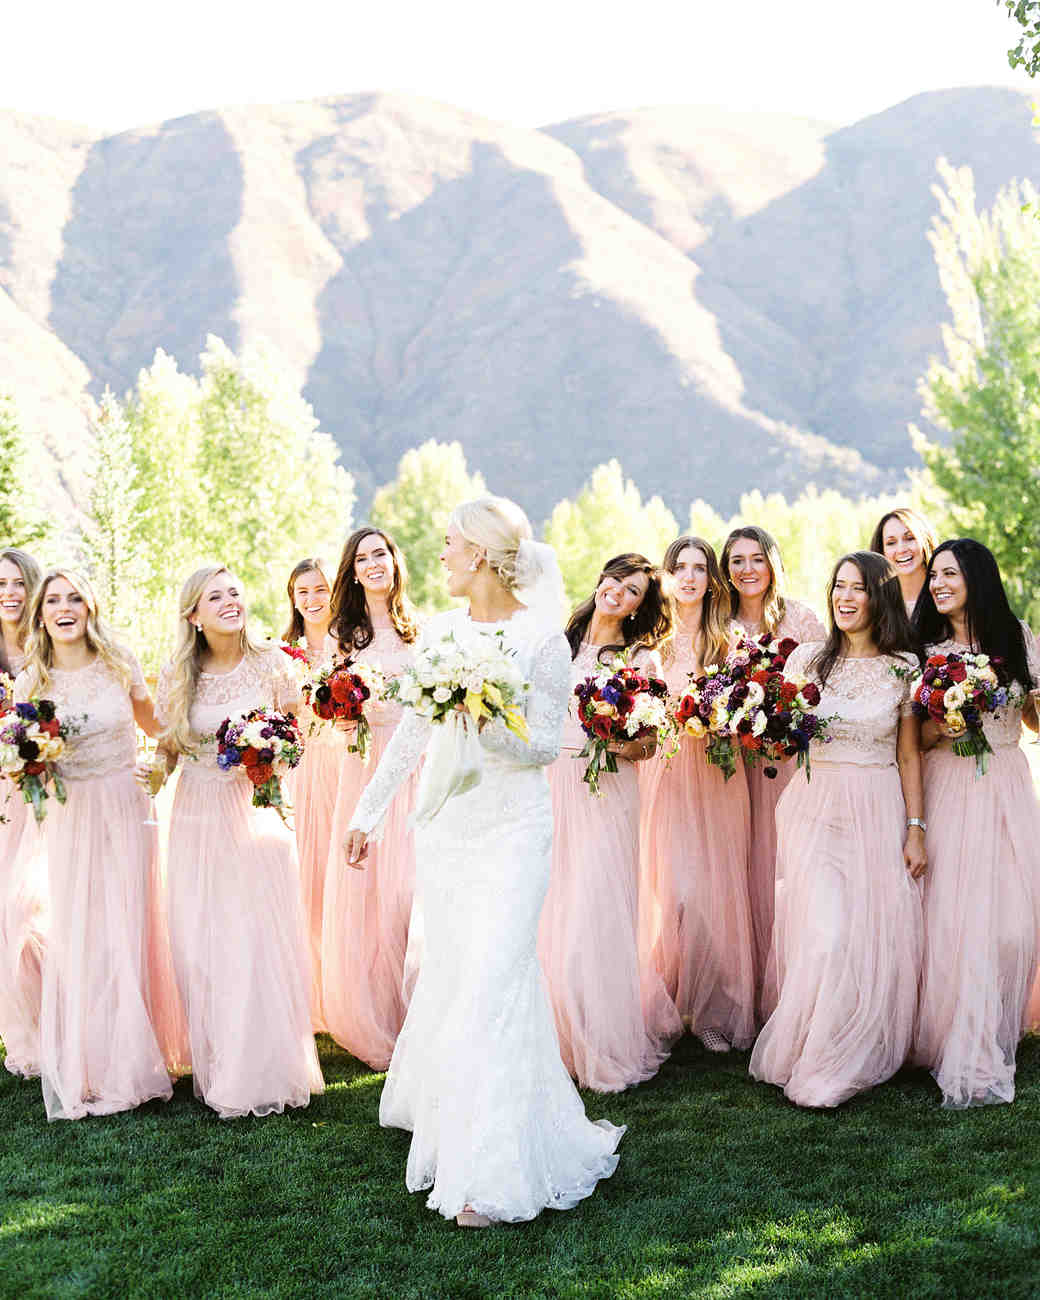 Wedding Party Ideas: 4 Bridesmaid Gift Ideas That Give Back